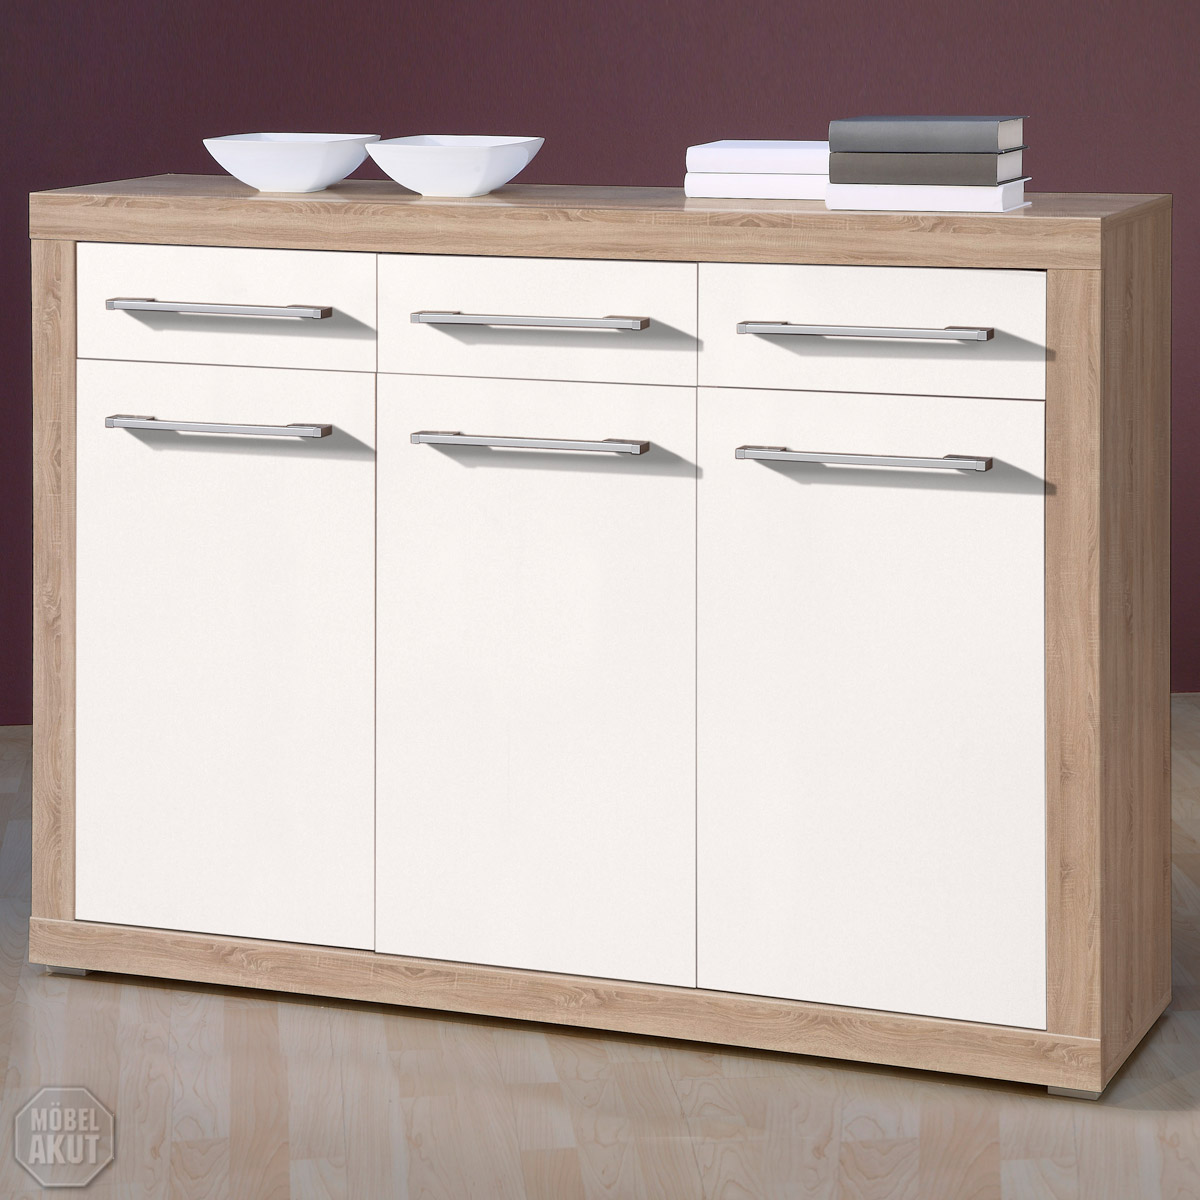 Sideboard cabo kommode in sonoma eiche sagerau weiss glanz for Sideboard sonoma eiche